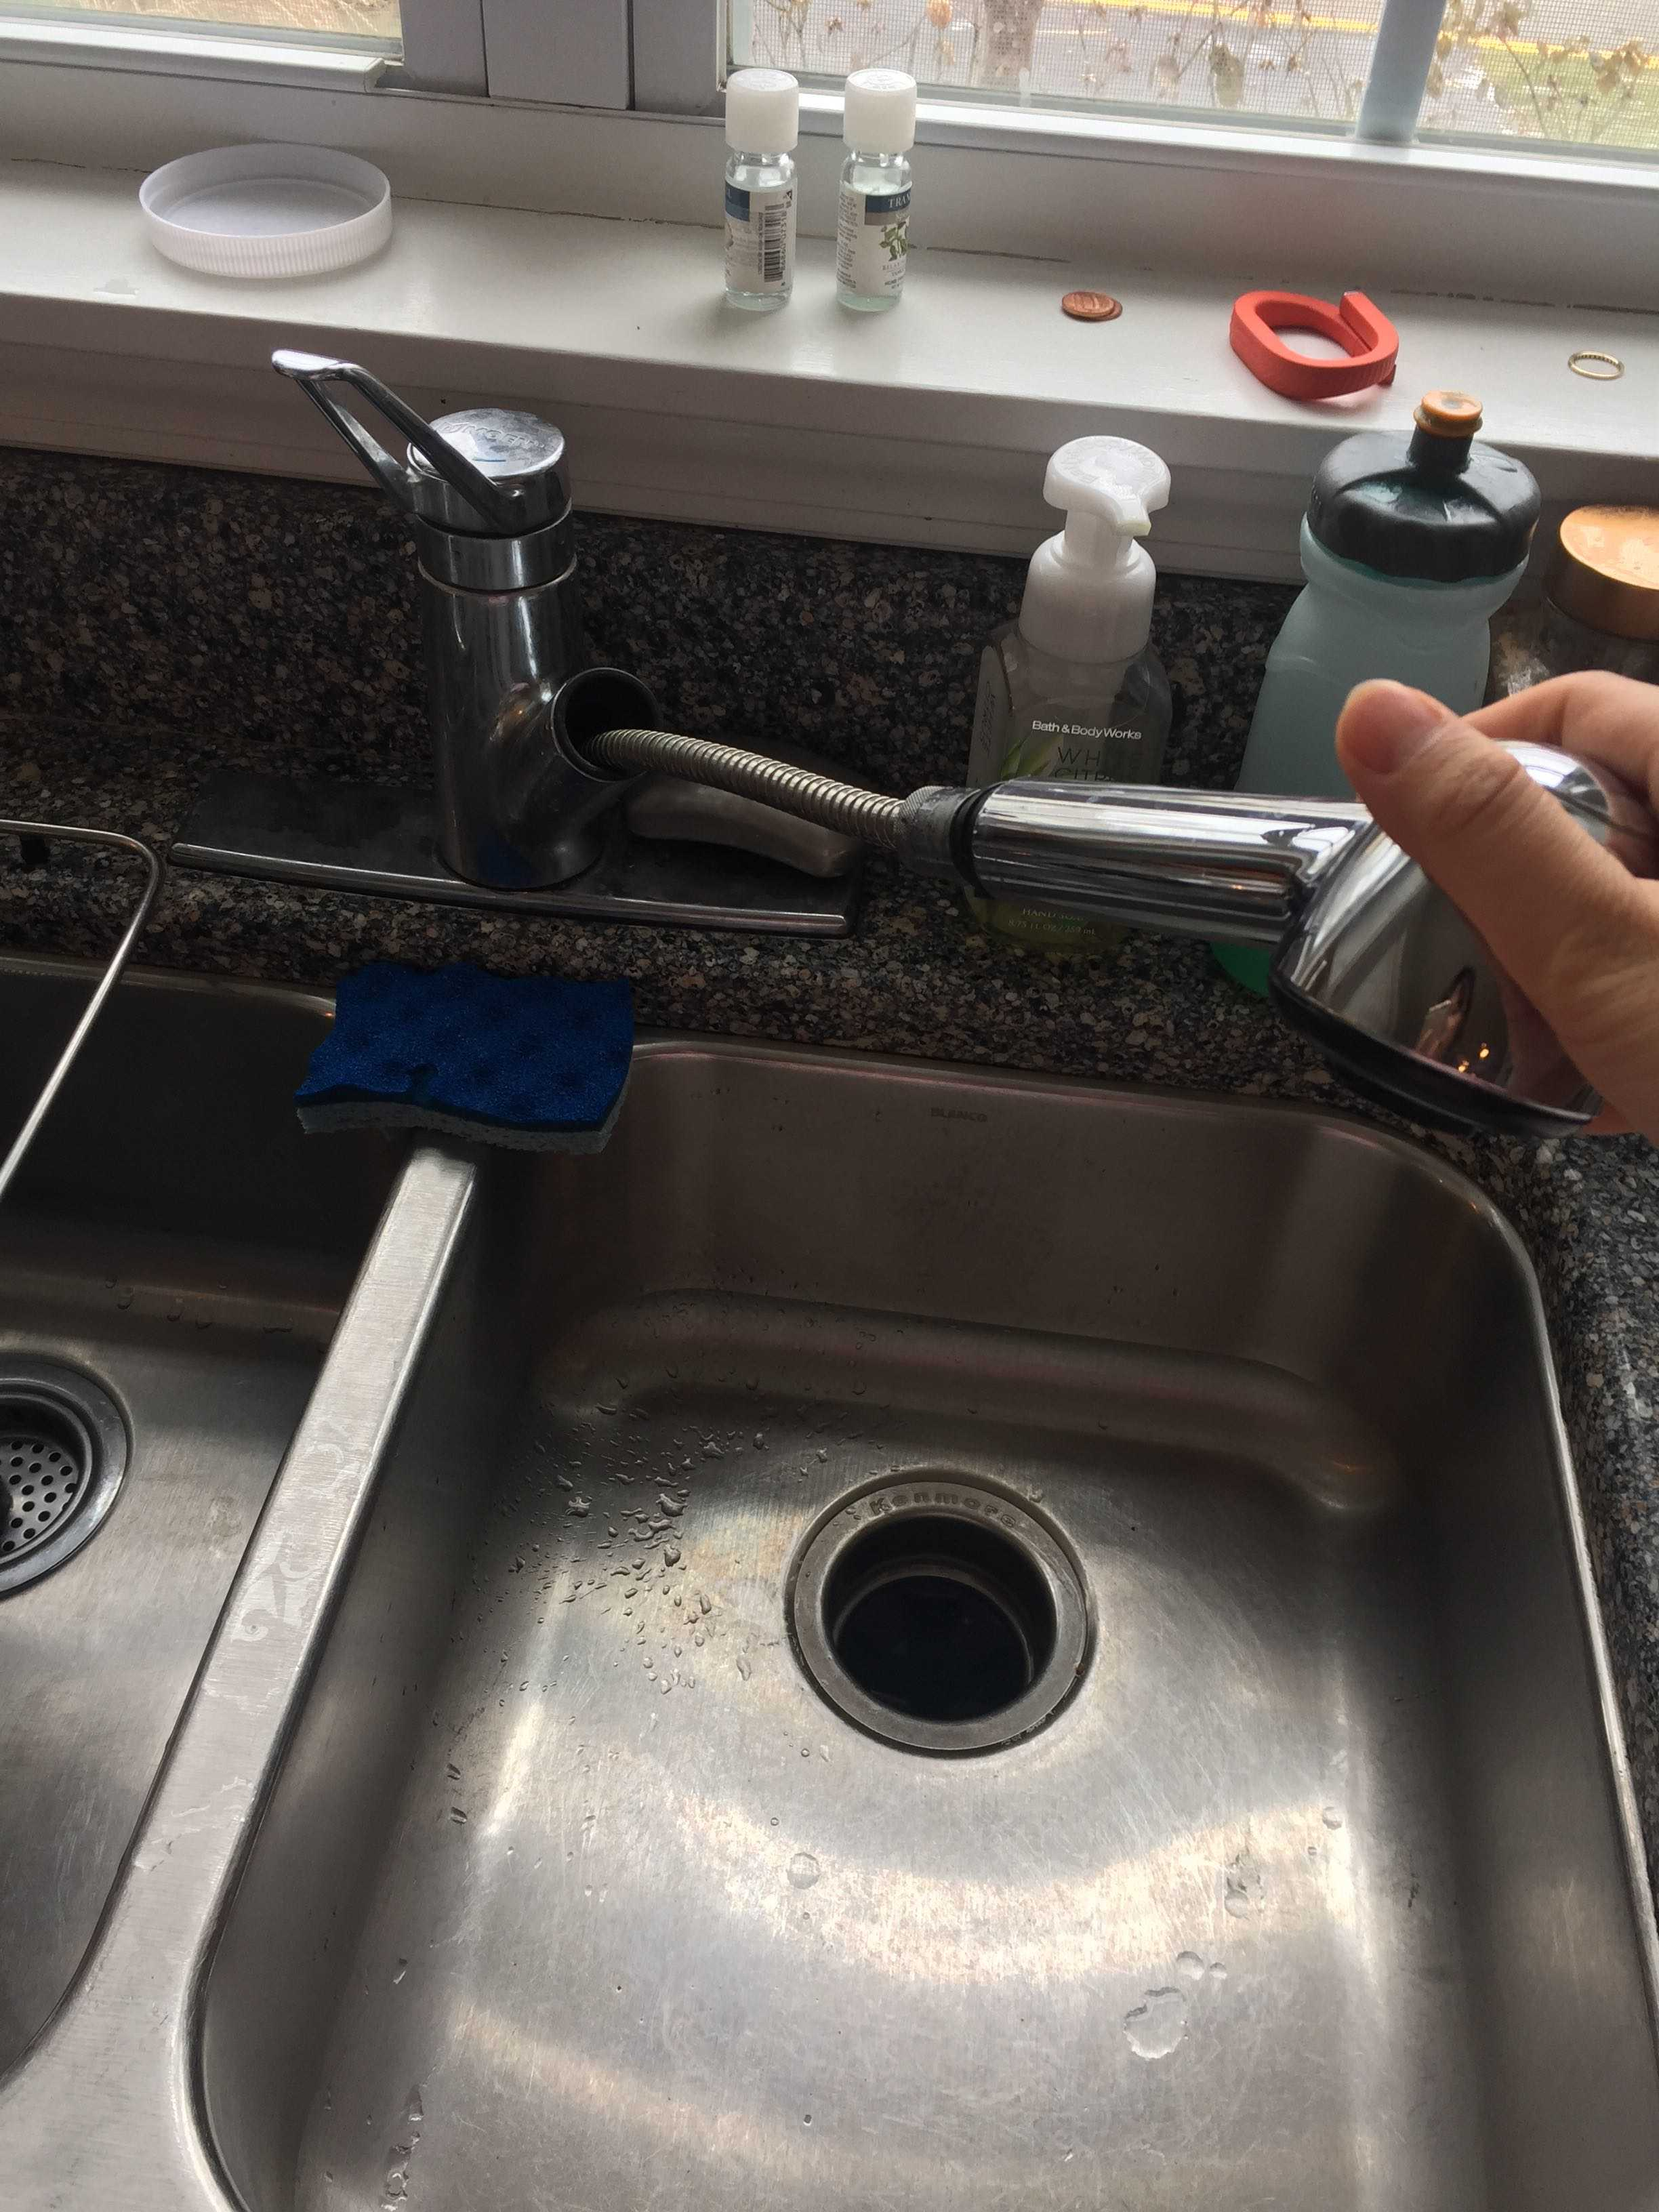 kitchen sink at lowes best floor for 厨房和美食的故事 收藏夹 知乎 在lowes的厨房水槽